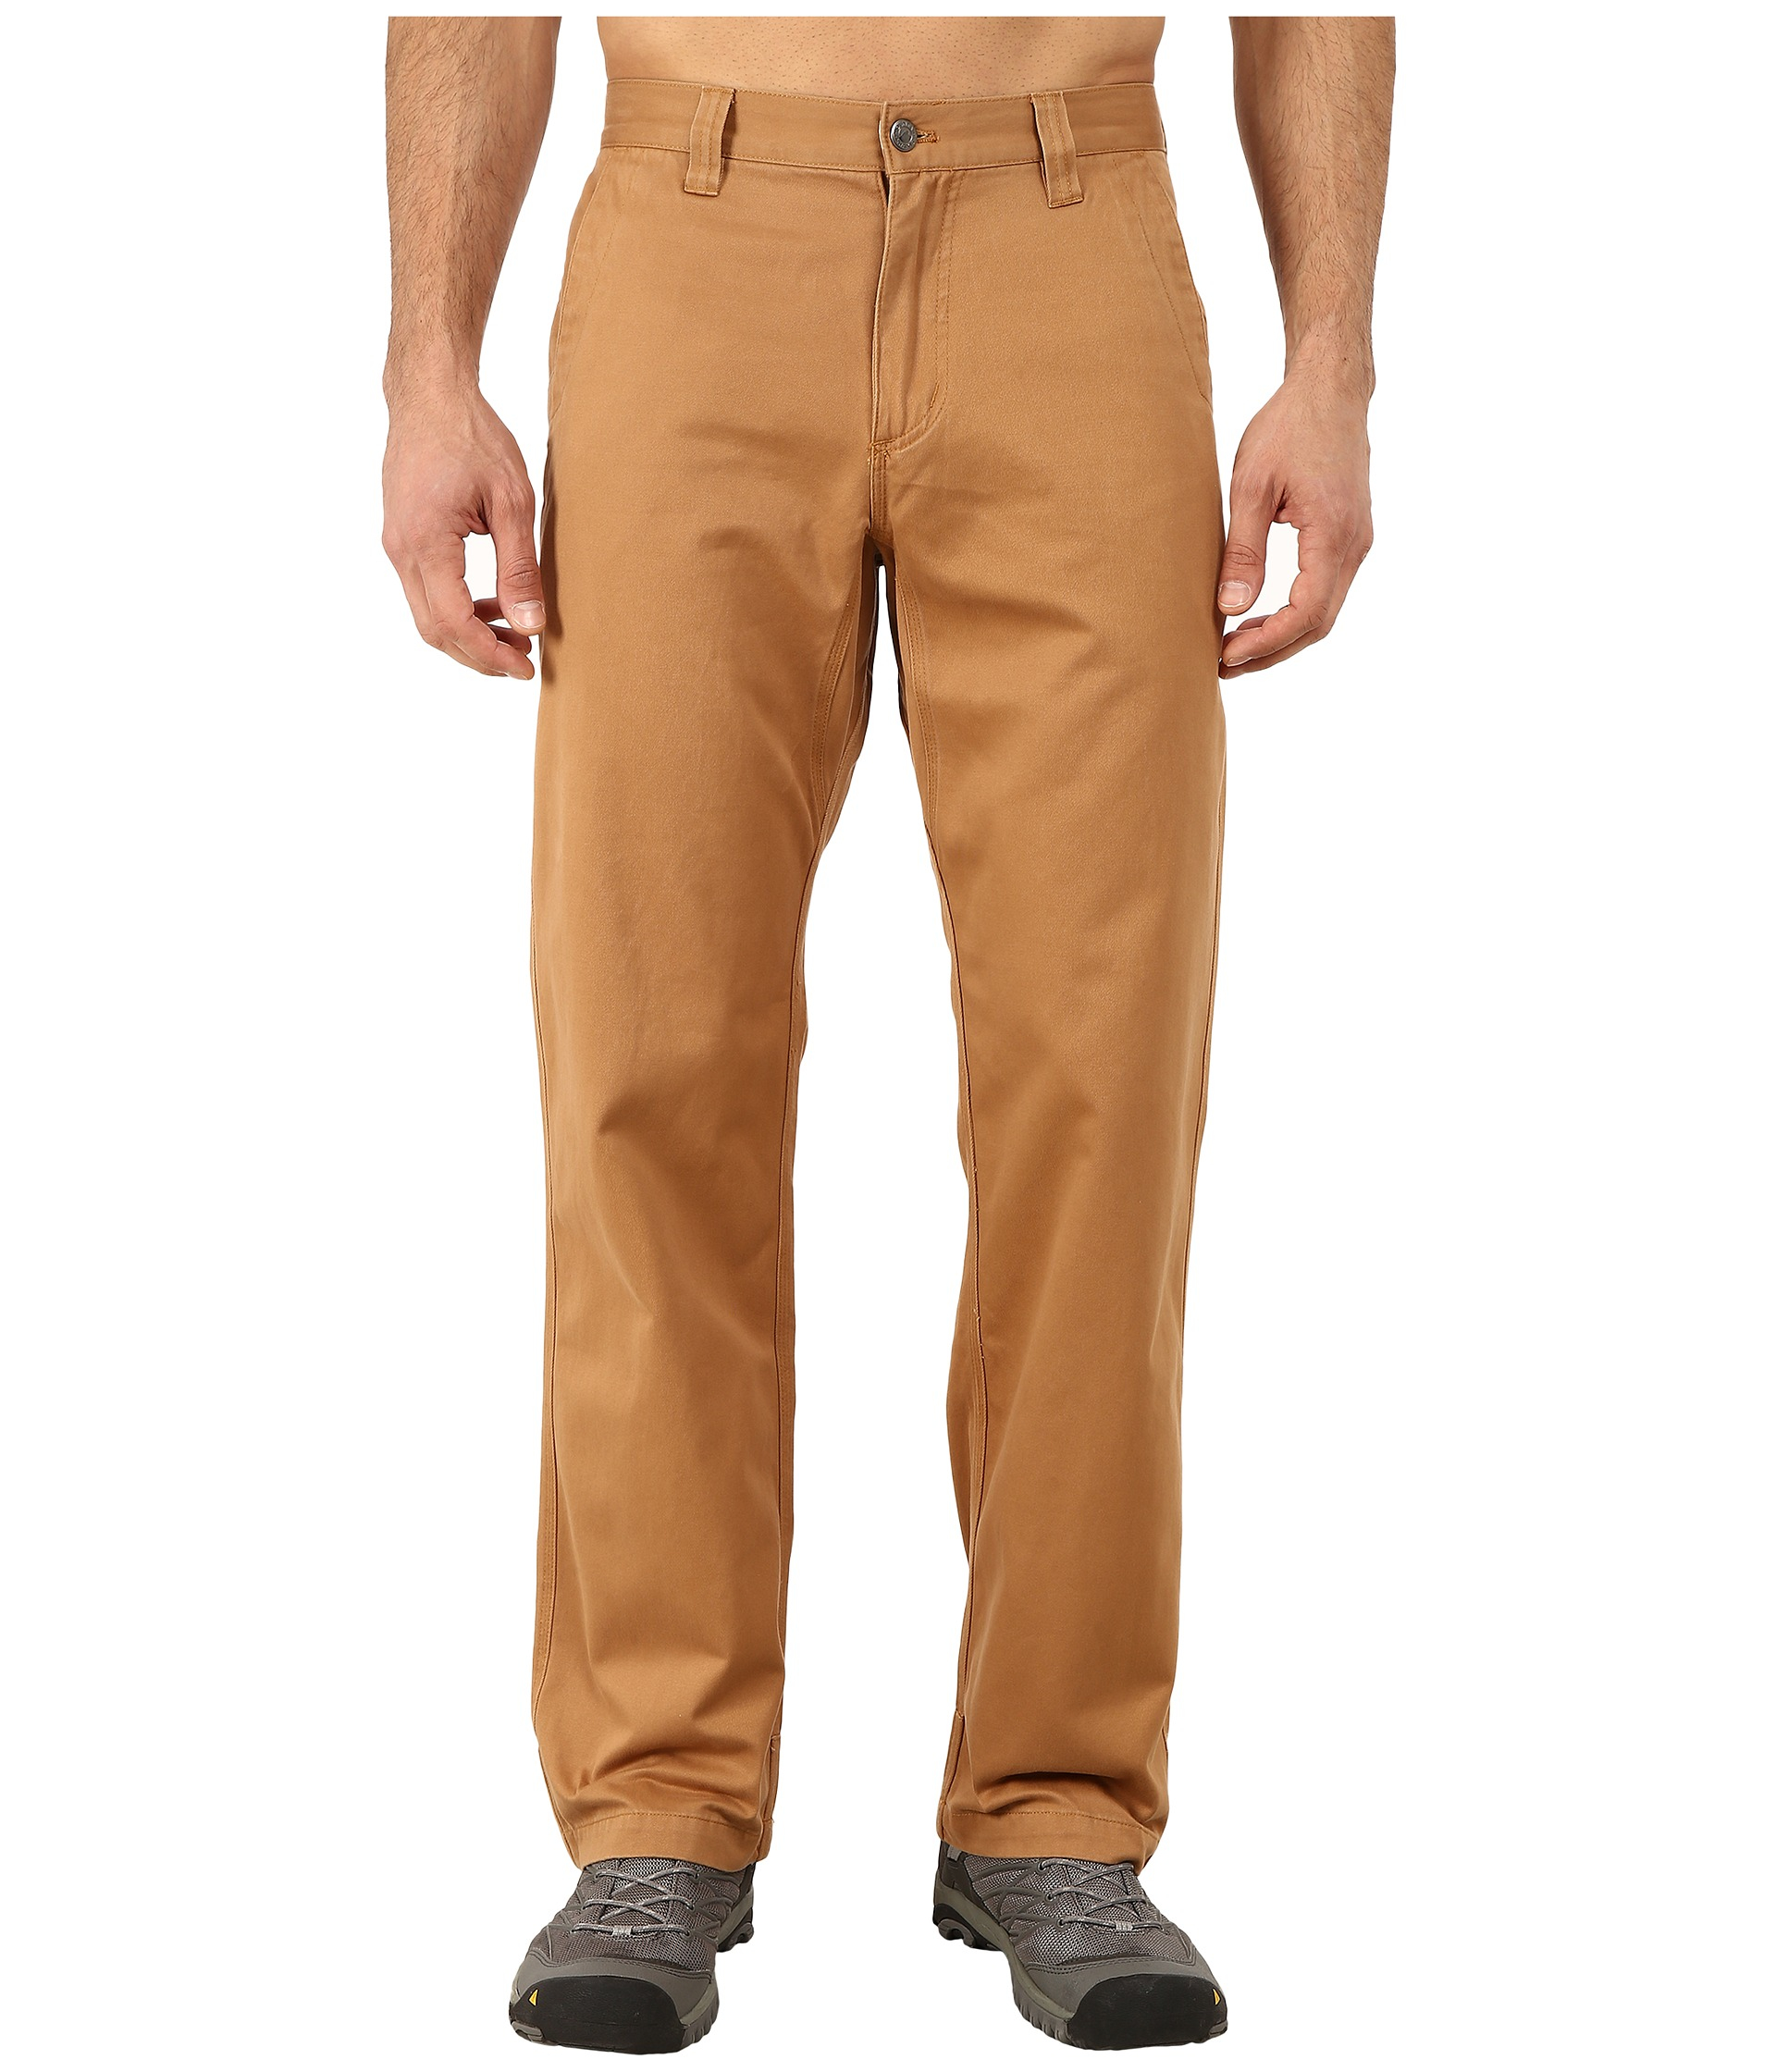 Awesome Dockers Casual Trouser In Brown For Men Khaki  Save 72  Lyst